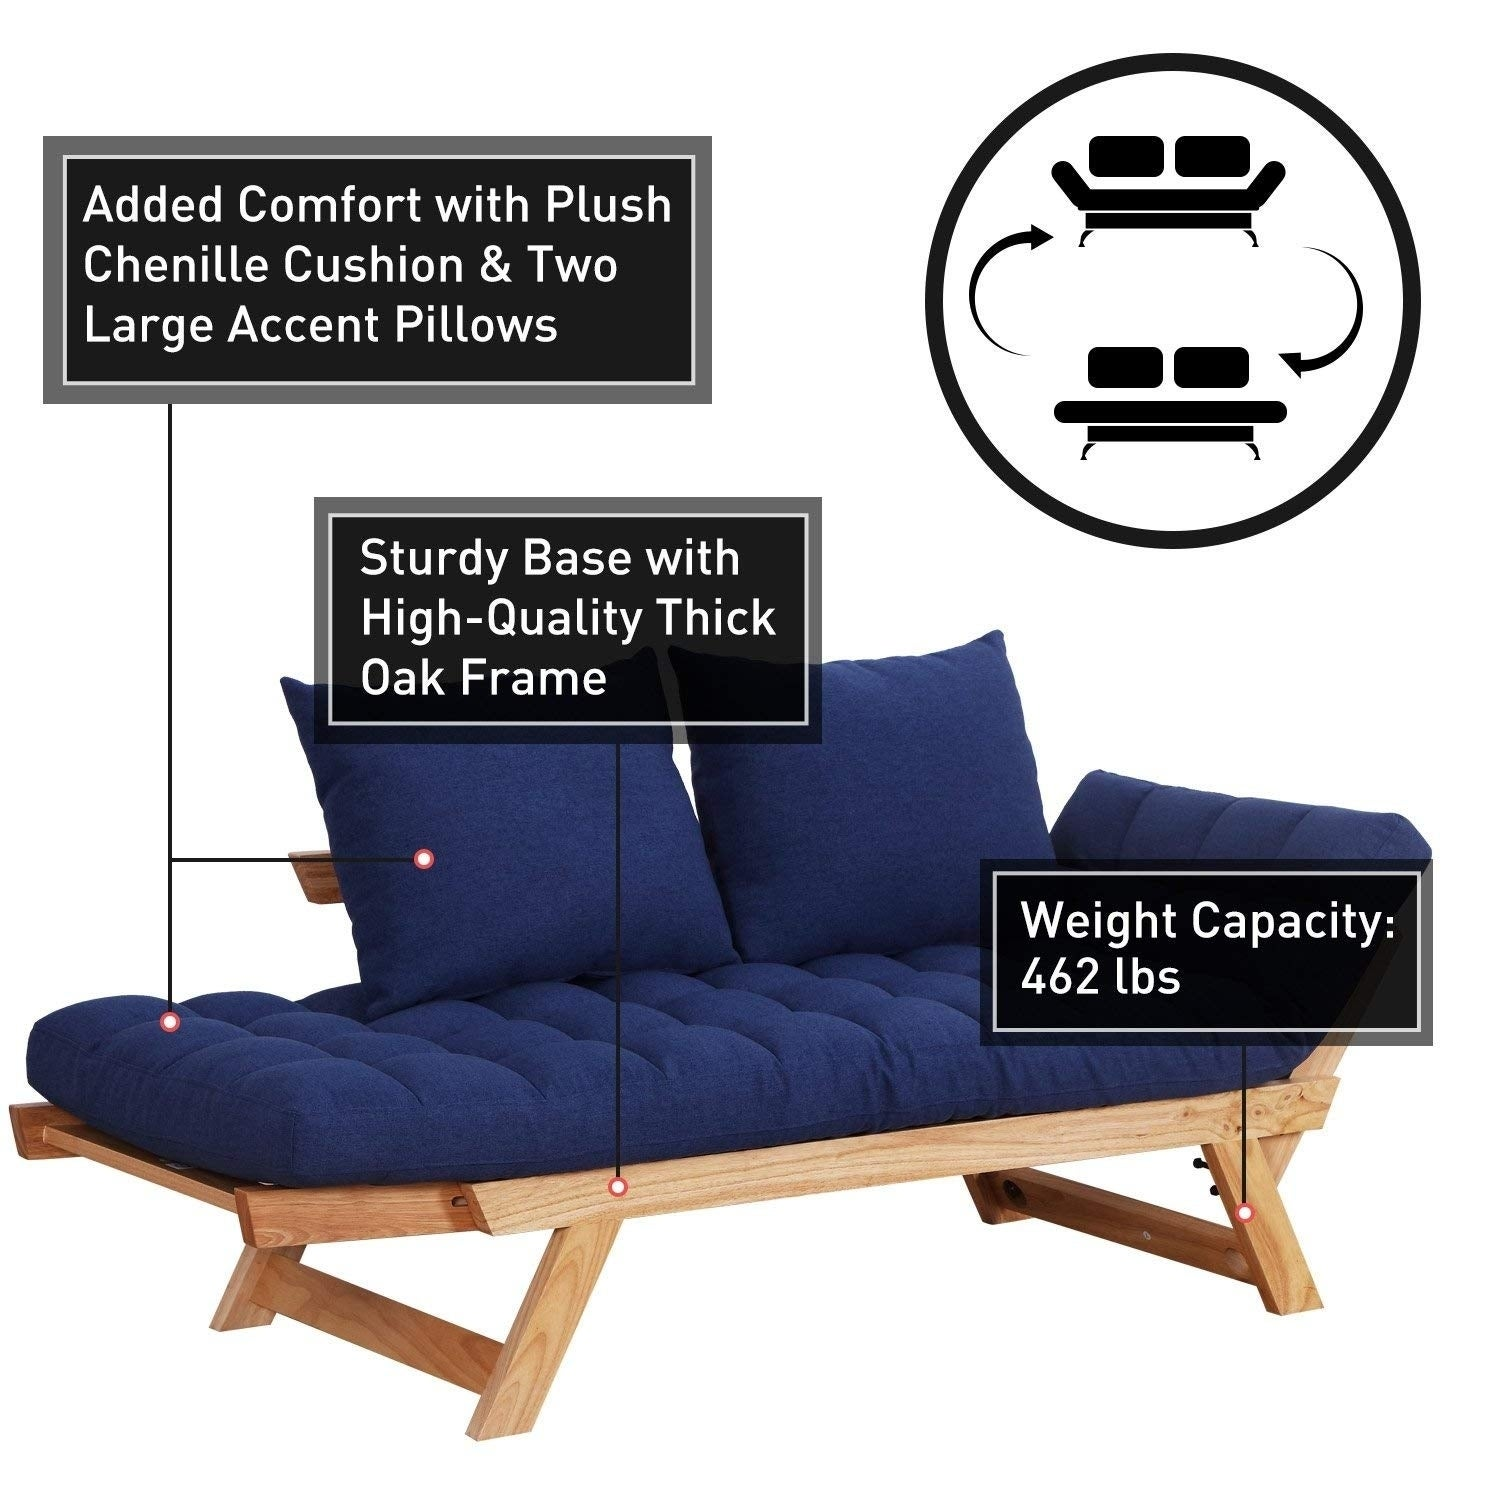 Remarkable Homcom Single Person 3 Position Convertible Couch Chaise Lounger Sofa Bed Natural Wood Dark Blue Uwap Interior Chair Design Uwaporg